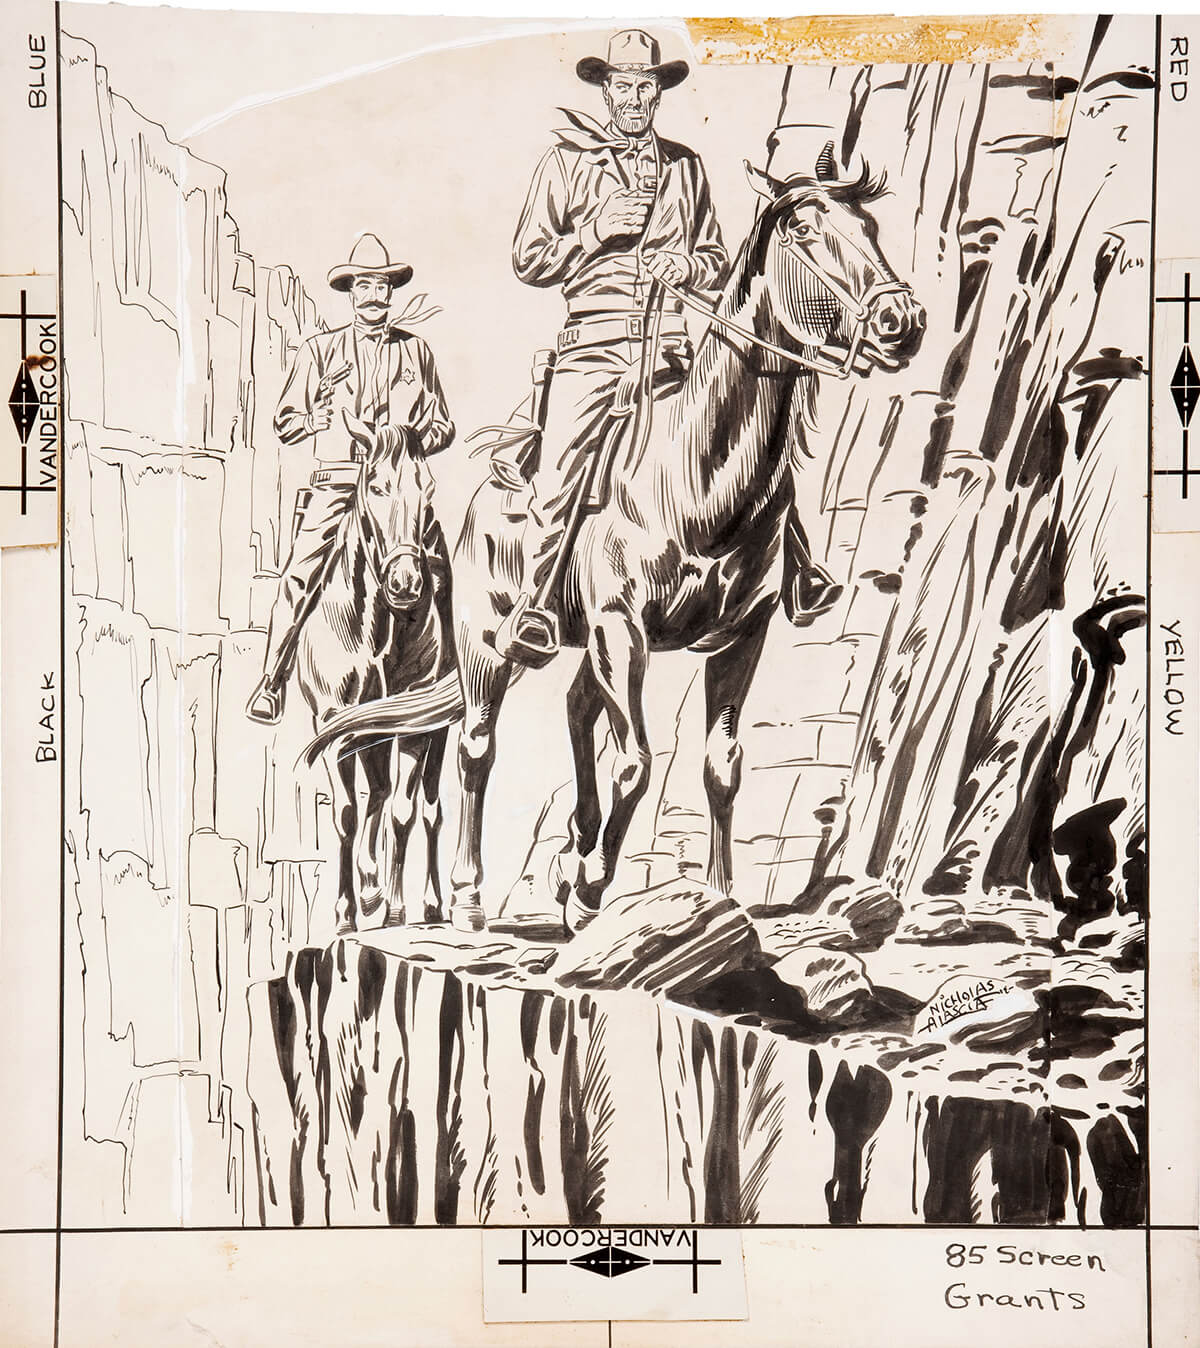 Outlaws Of The West 15 Cover by Charles Nicholas and Vince Alascia